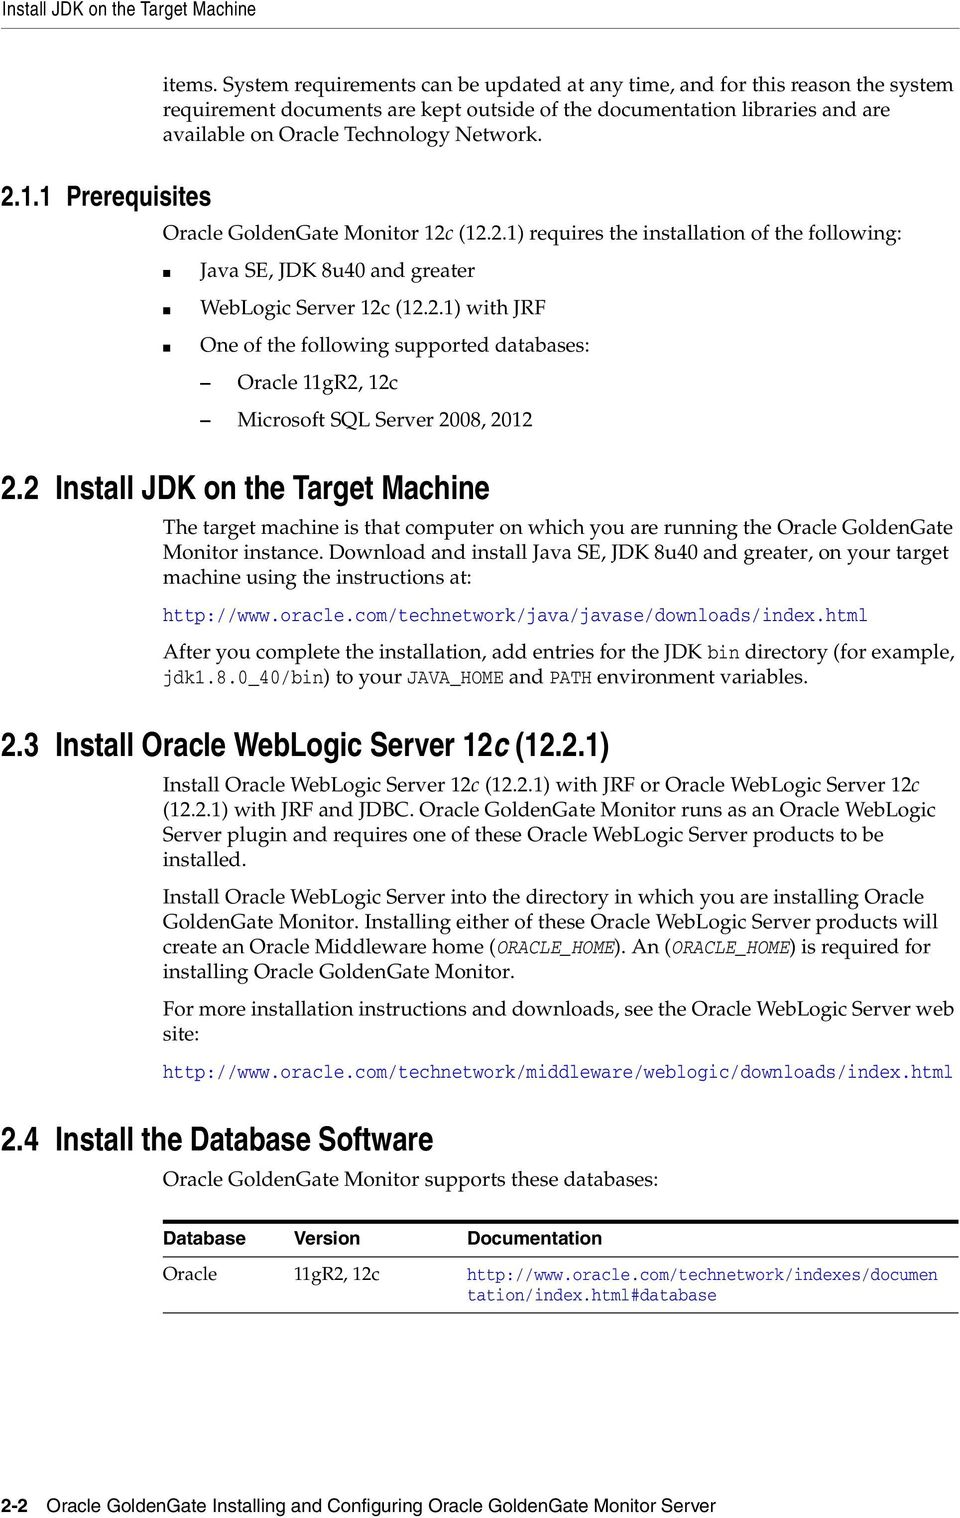 Installing and Configuring Oracle GoldenGate Monitor 12c